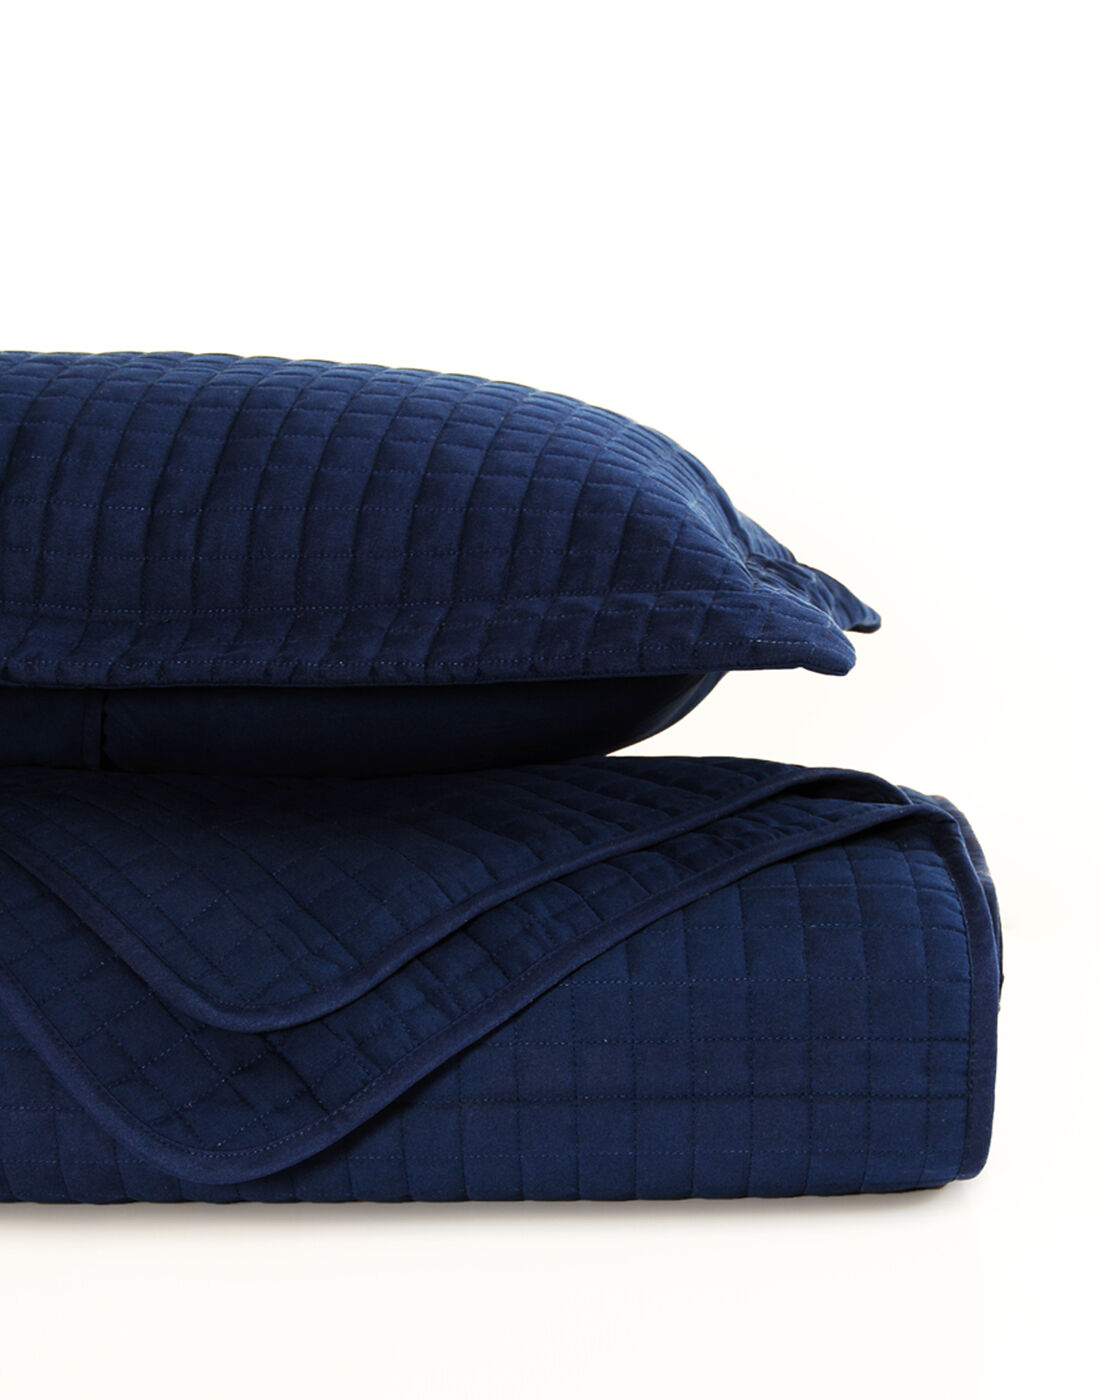 RAINTREE 3 PC SOFT MICROFIBER COVERLET SET NAVY Blau